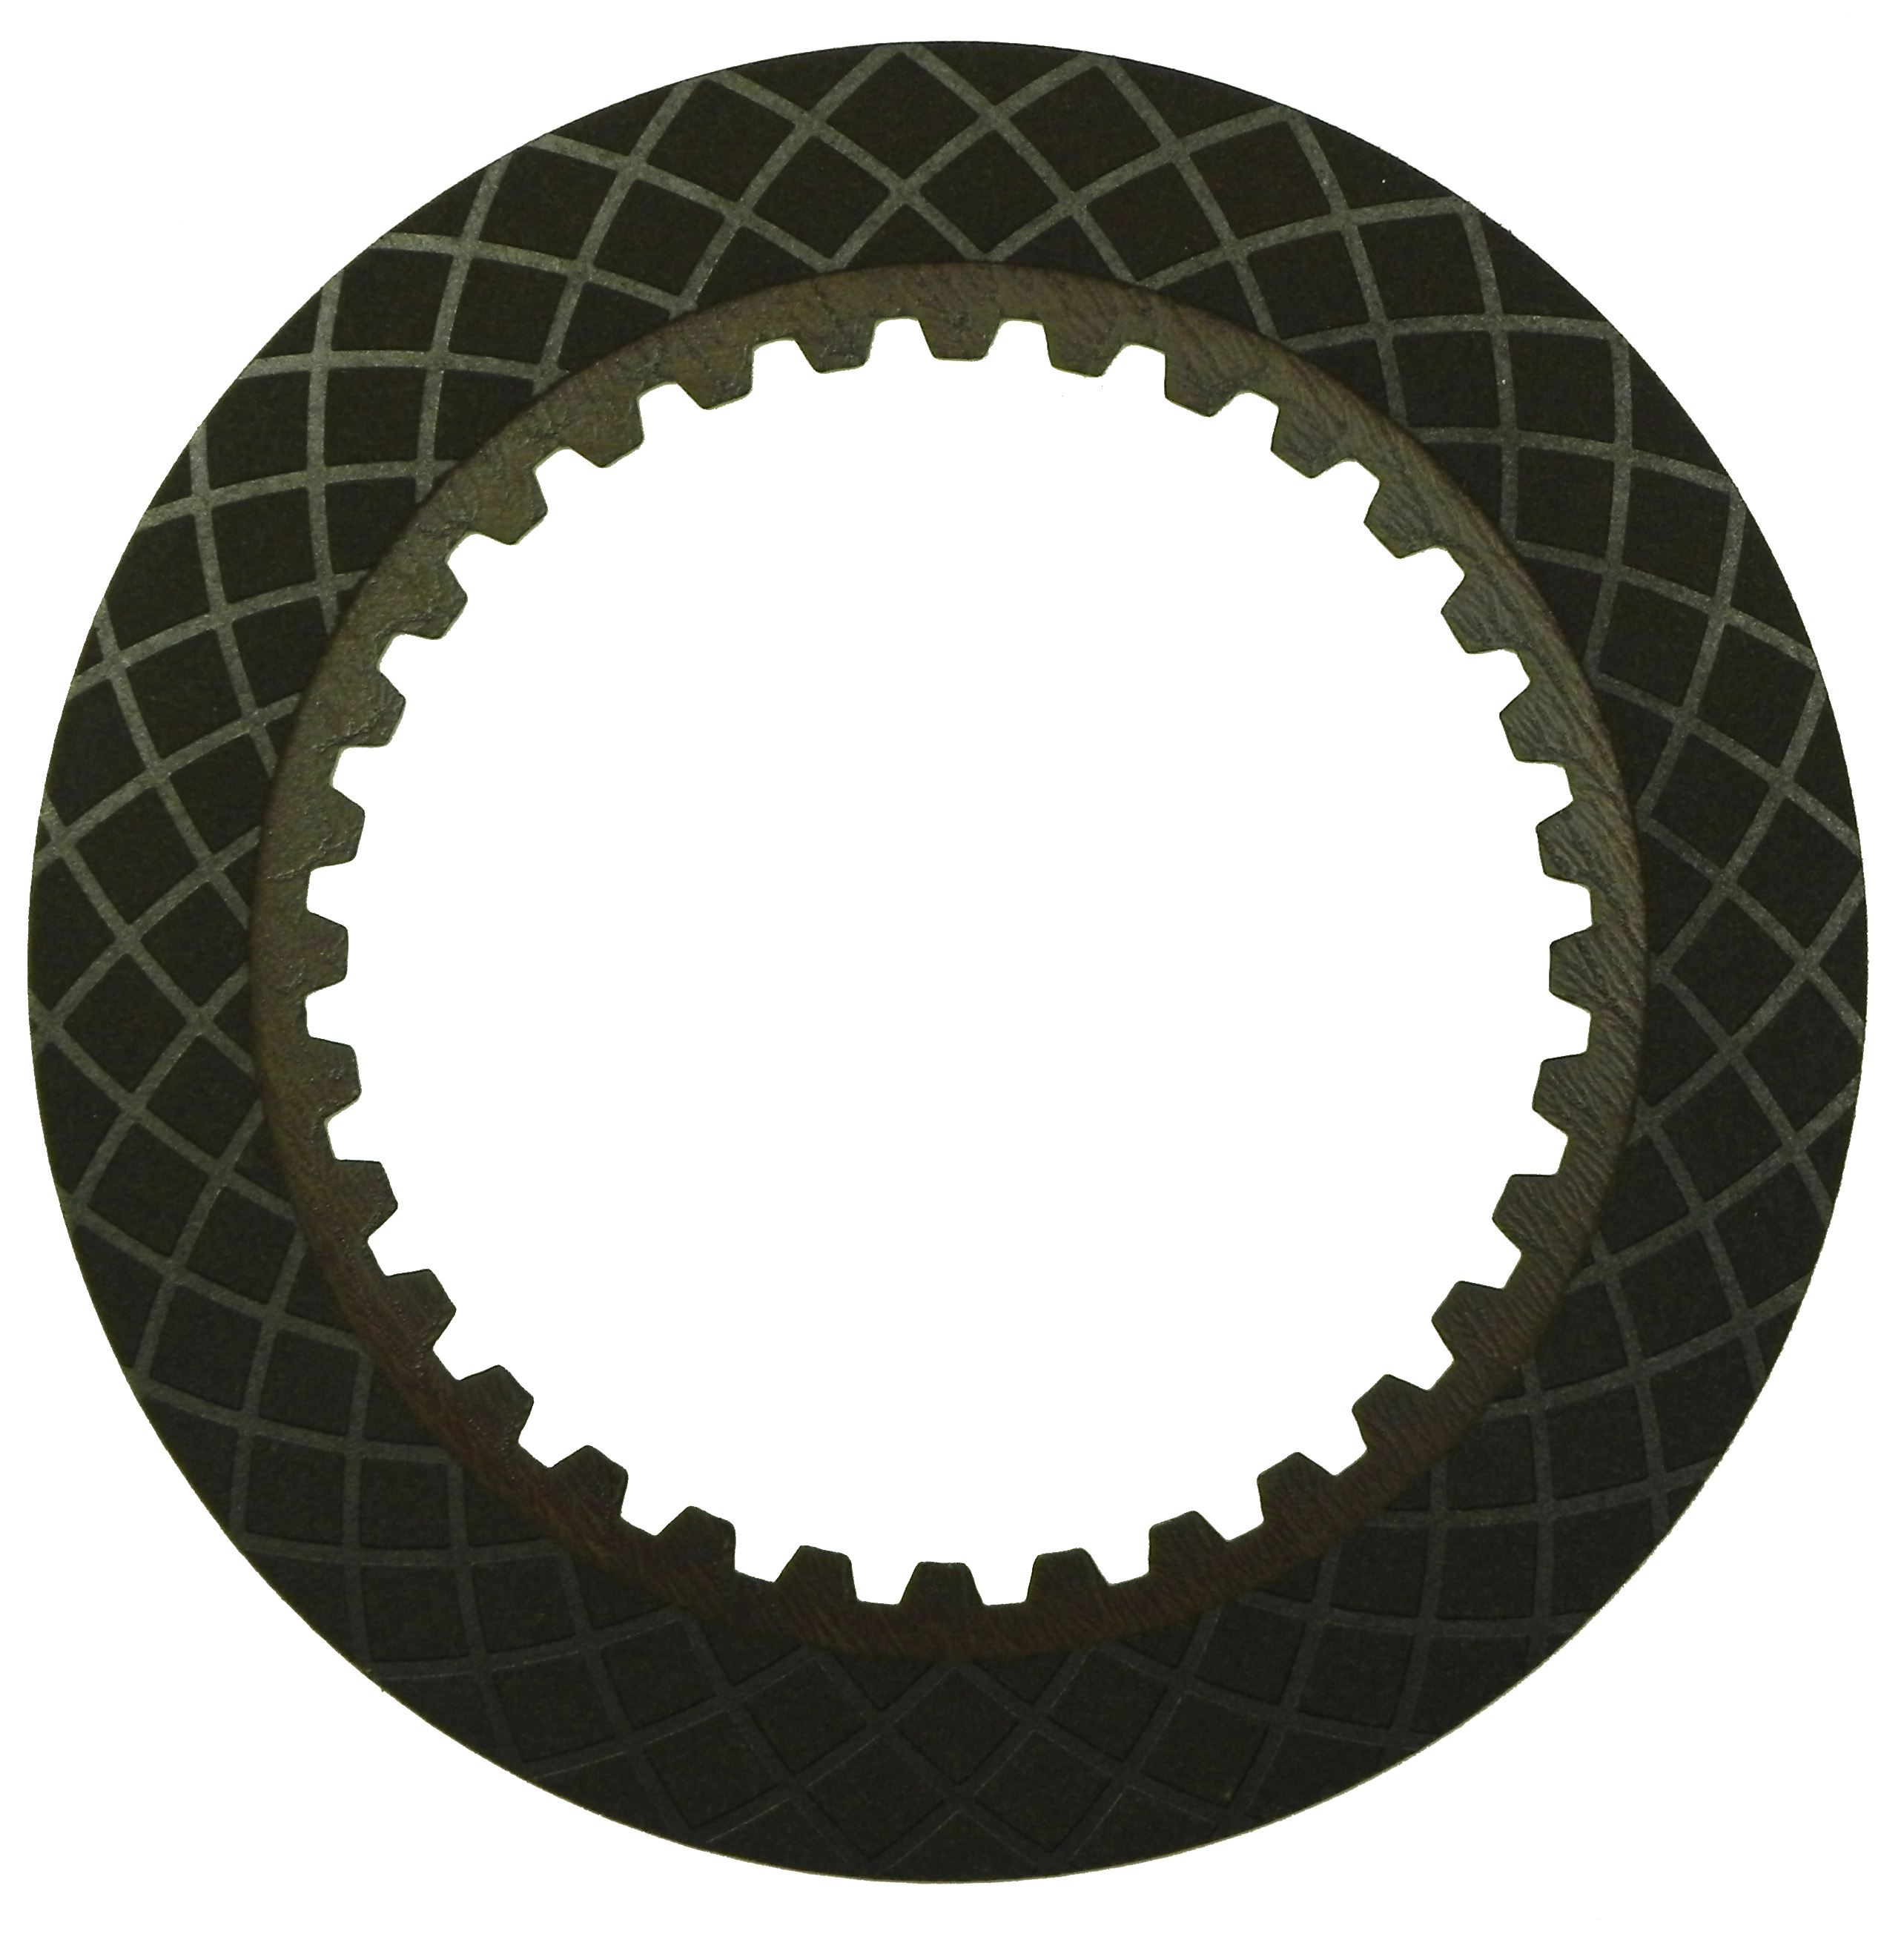 R571828 | 2009-2010 Friction Clutch Plate GPX 4th, 5th GPX